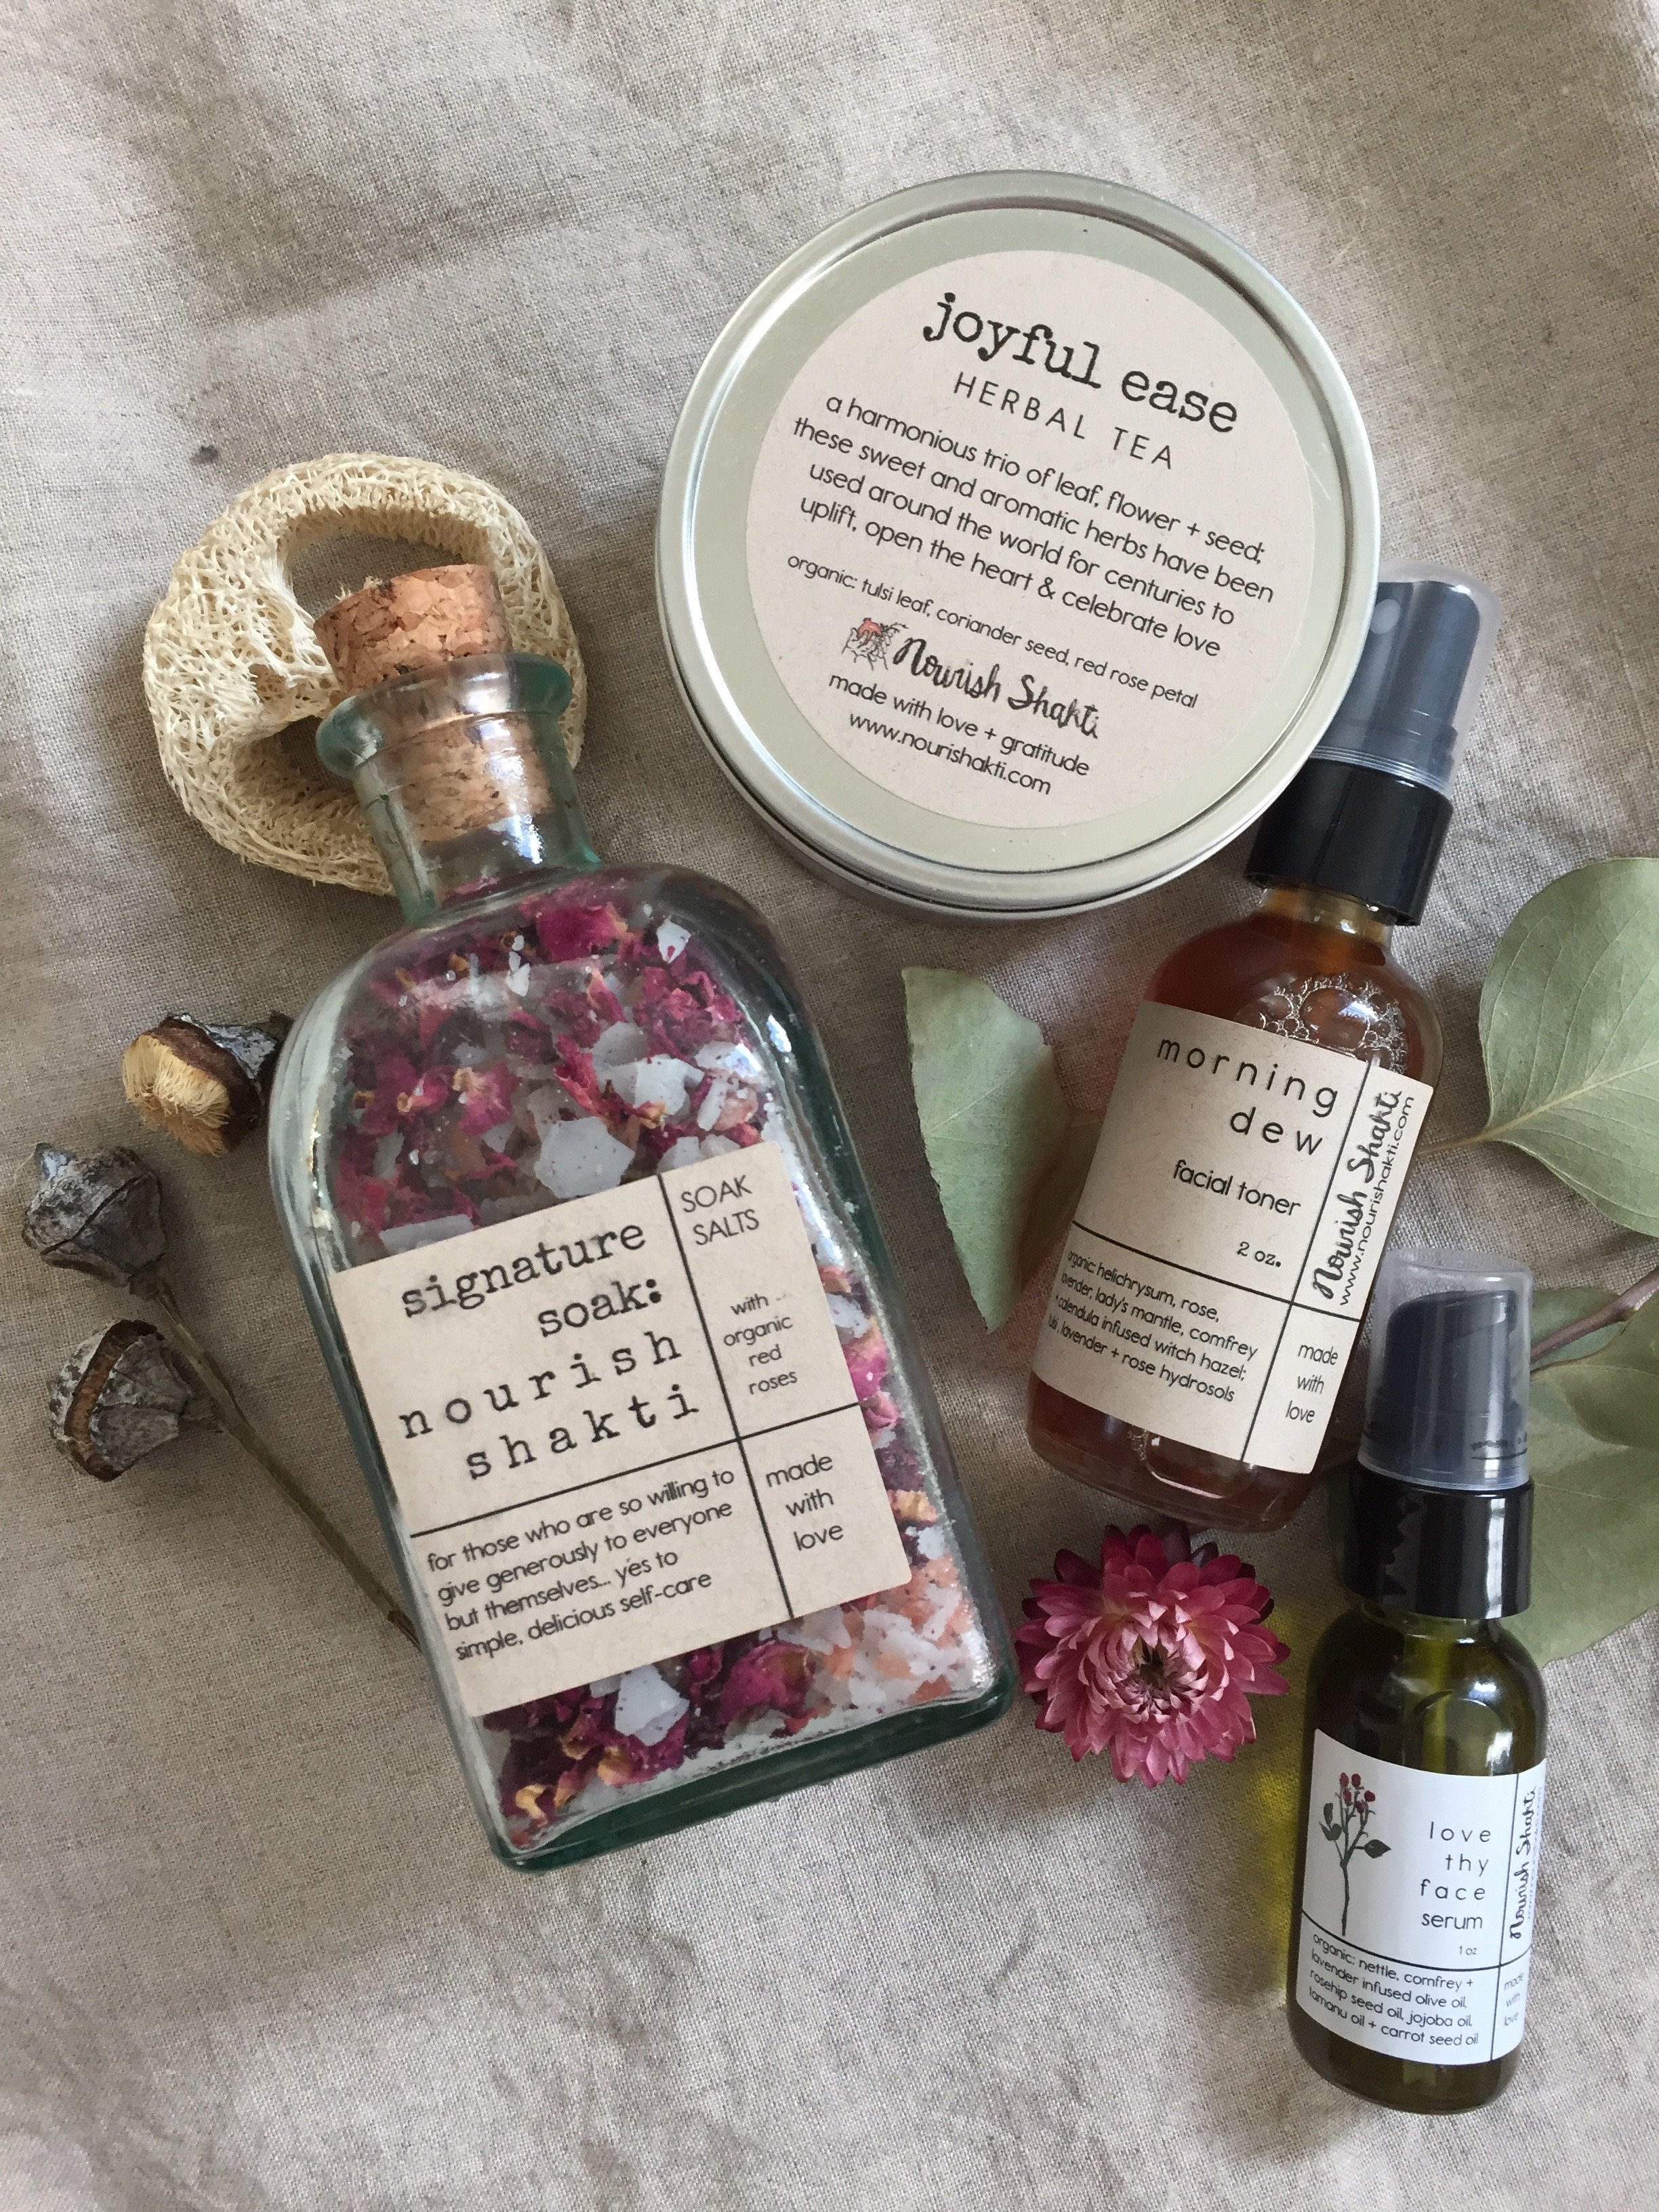 Stockists — Nourish Shakti Holistic Health and Herbal Skincare